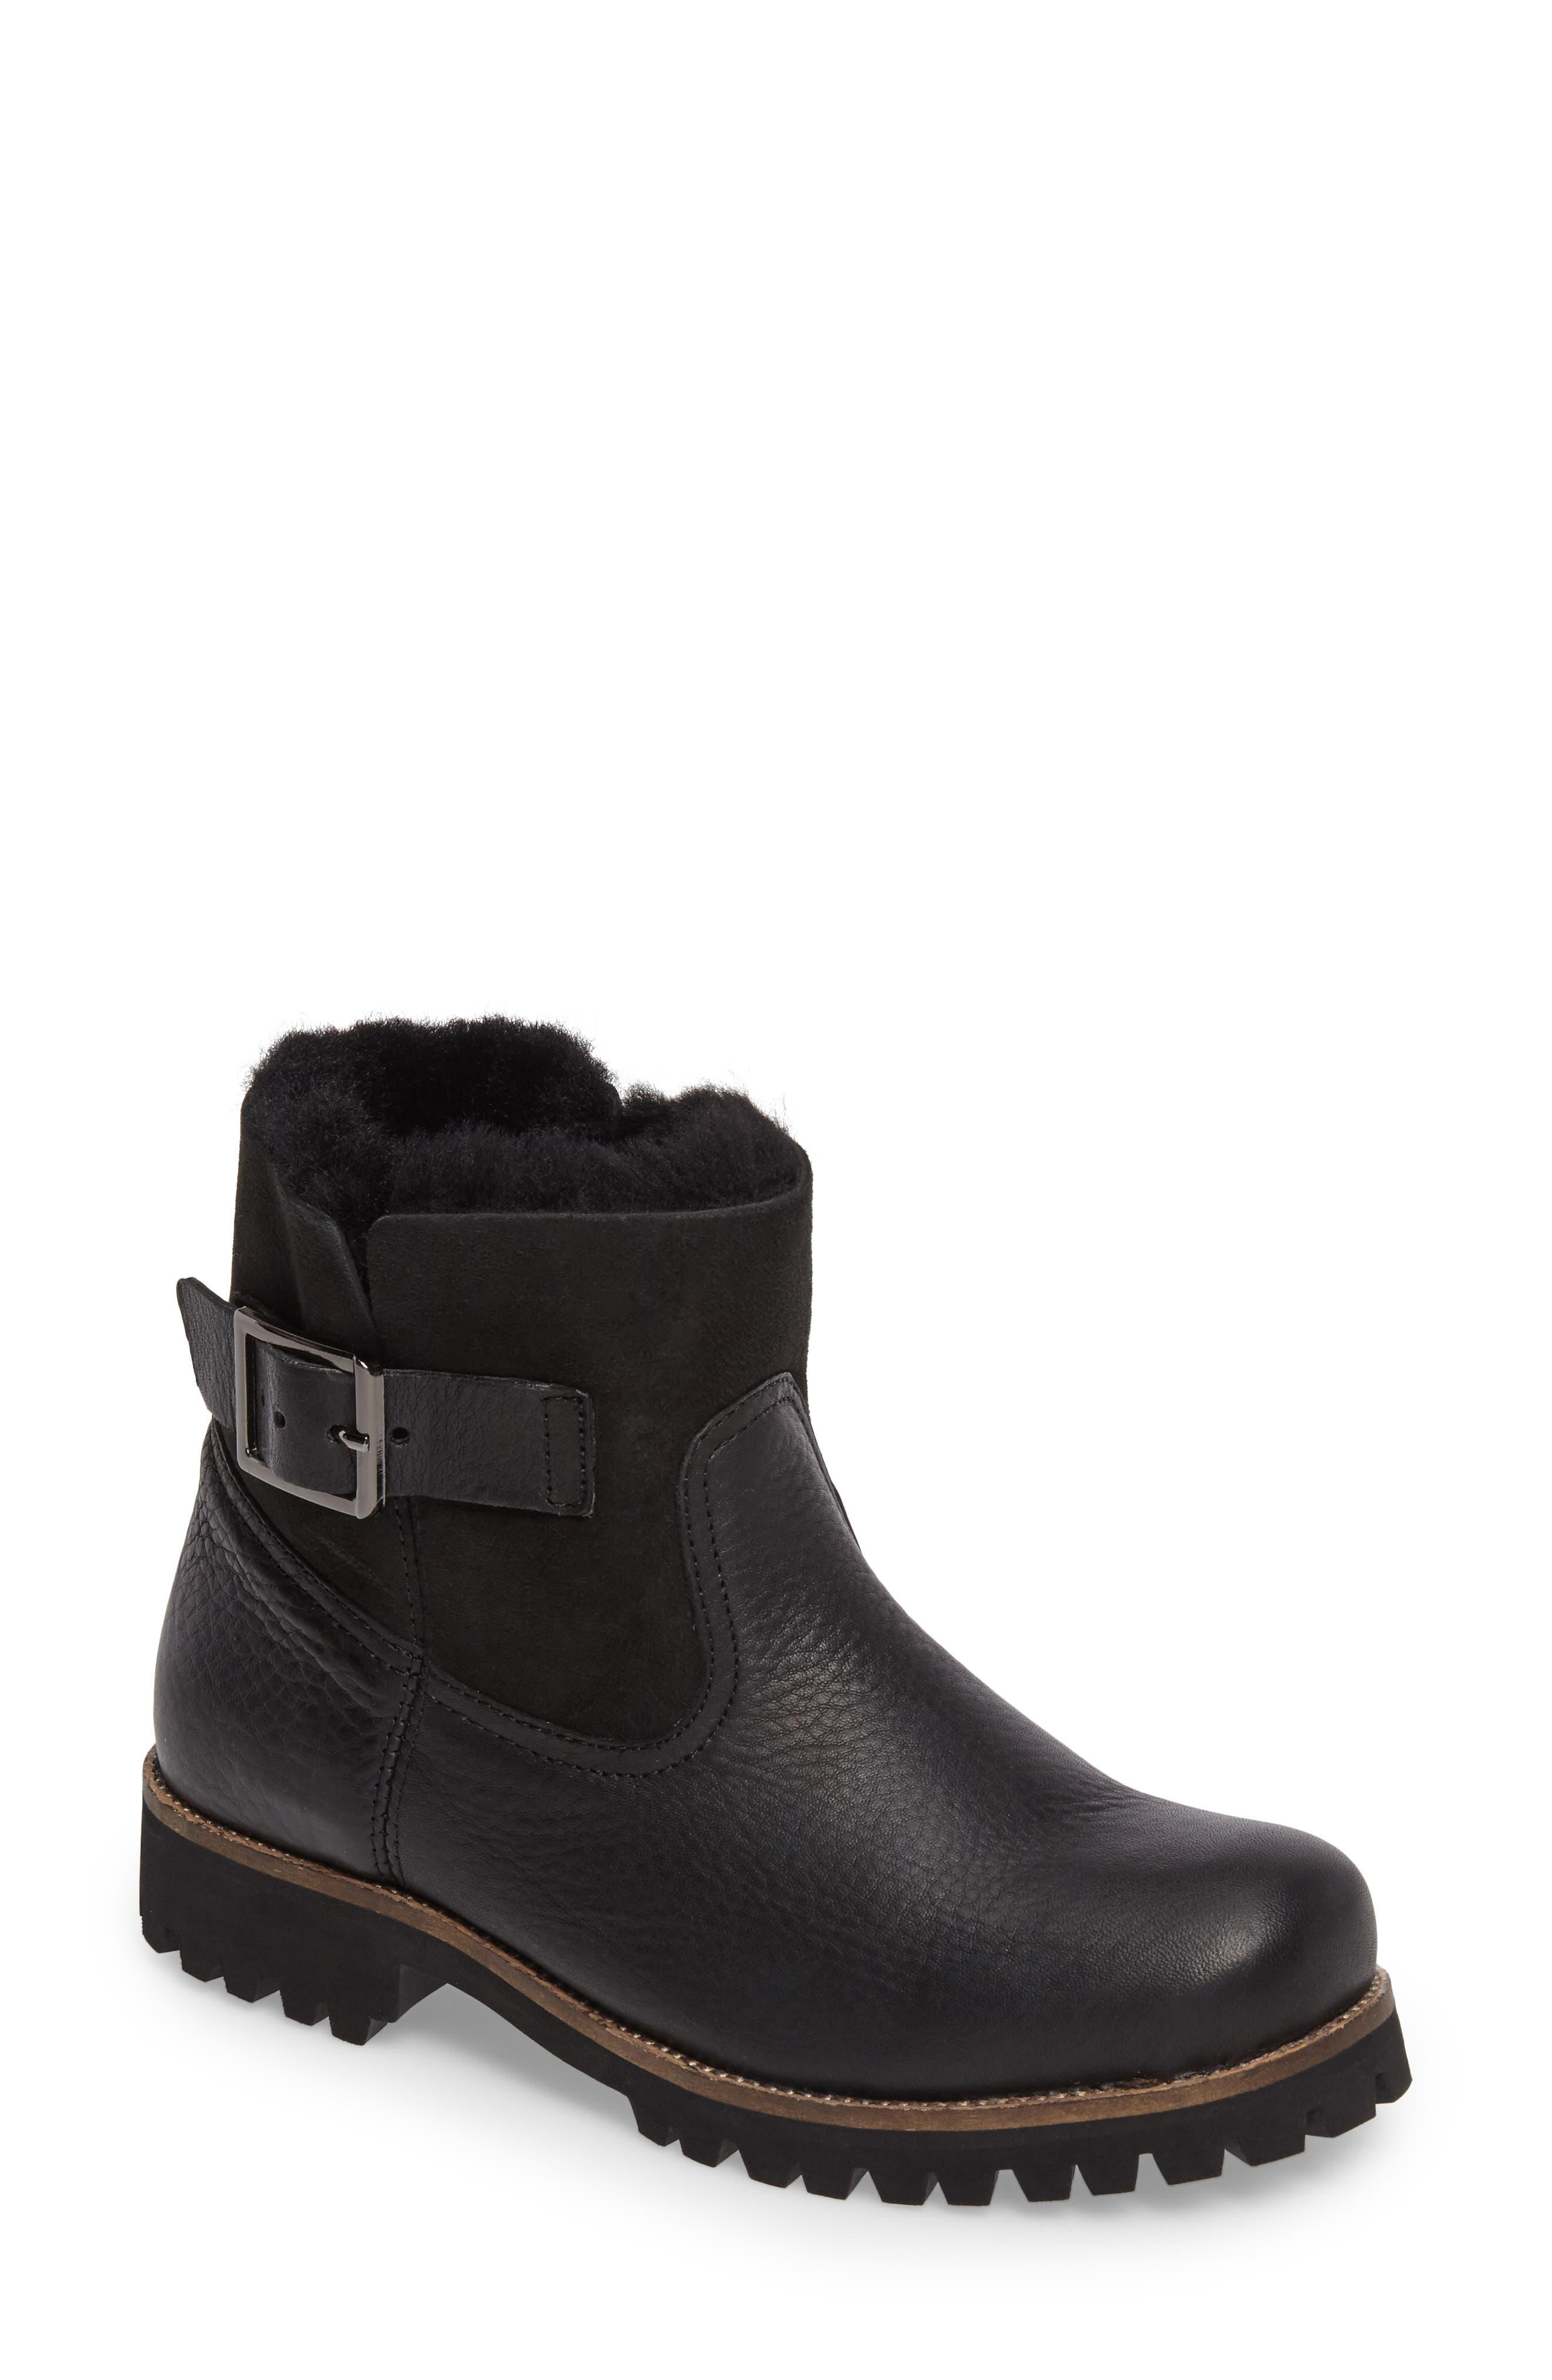 OL06 Genuine Shearling Lined Bootie,                             Main thumbnail 1, color,                             Black Leather